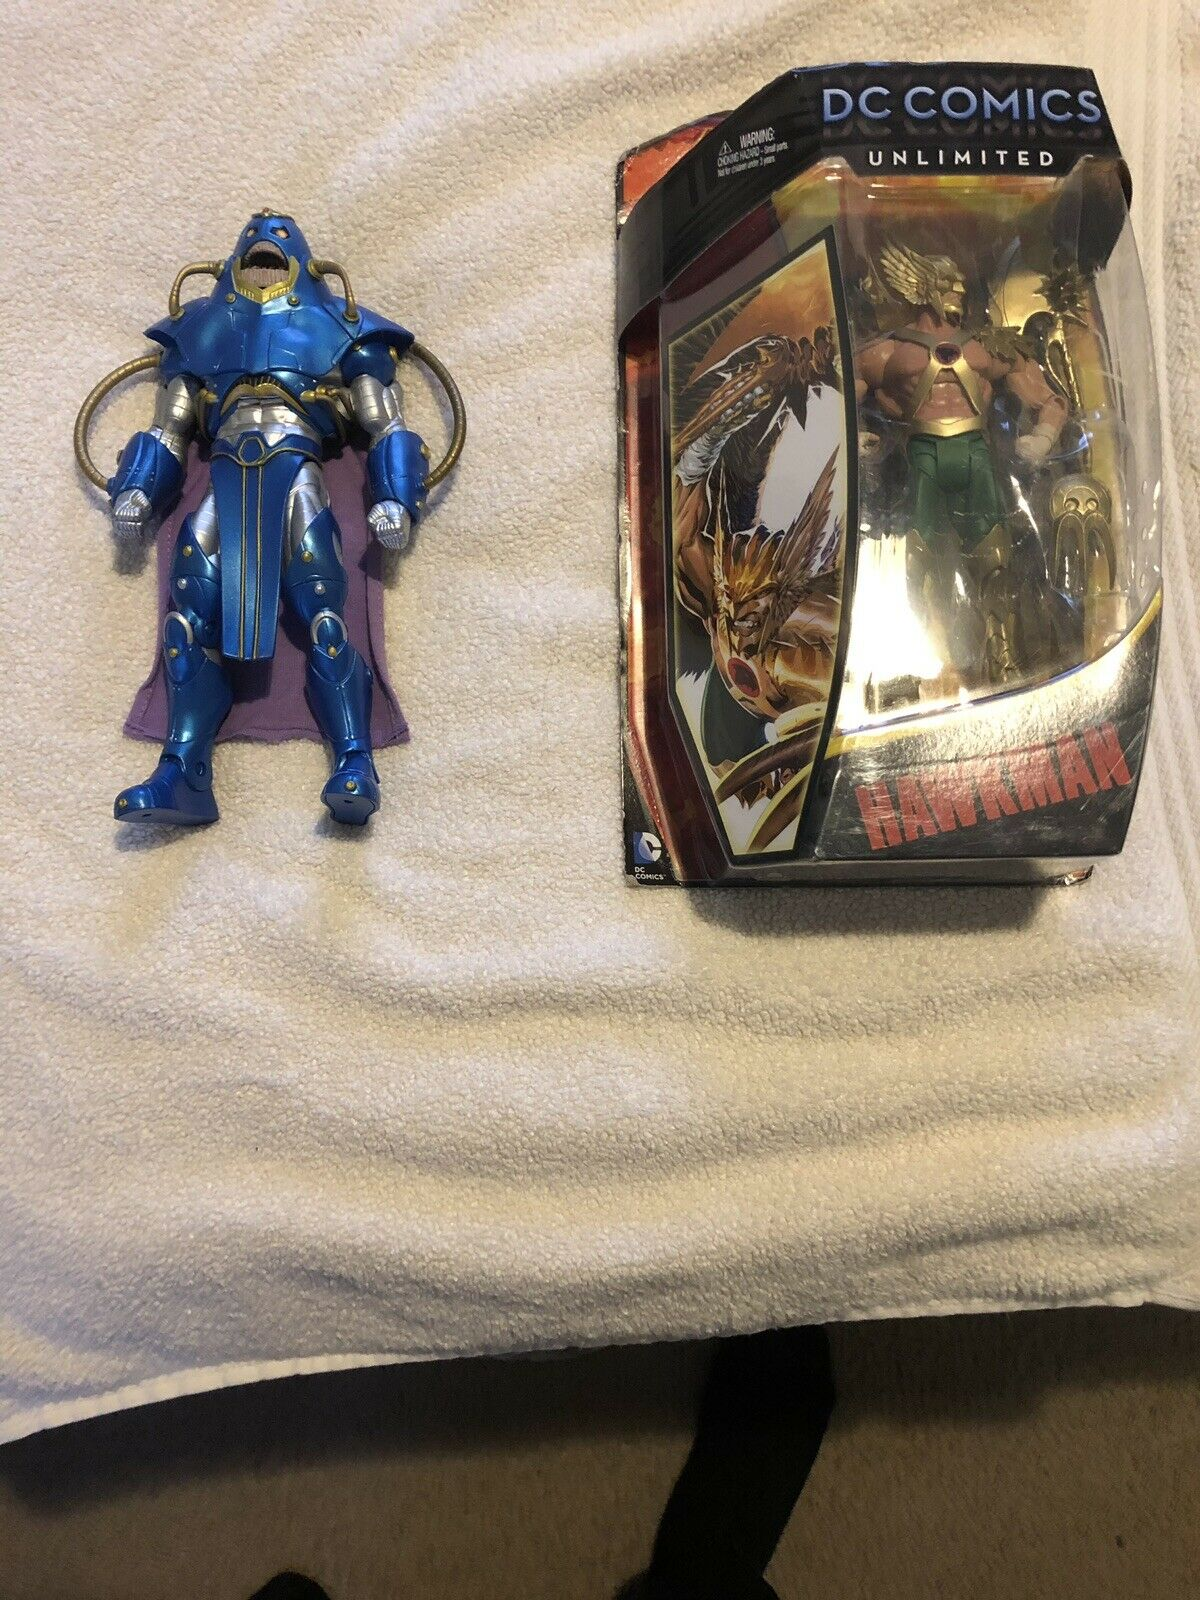 Anti monitor BAF (open-used) and DC Comics Unlimited Hawkman (new-unopened)